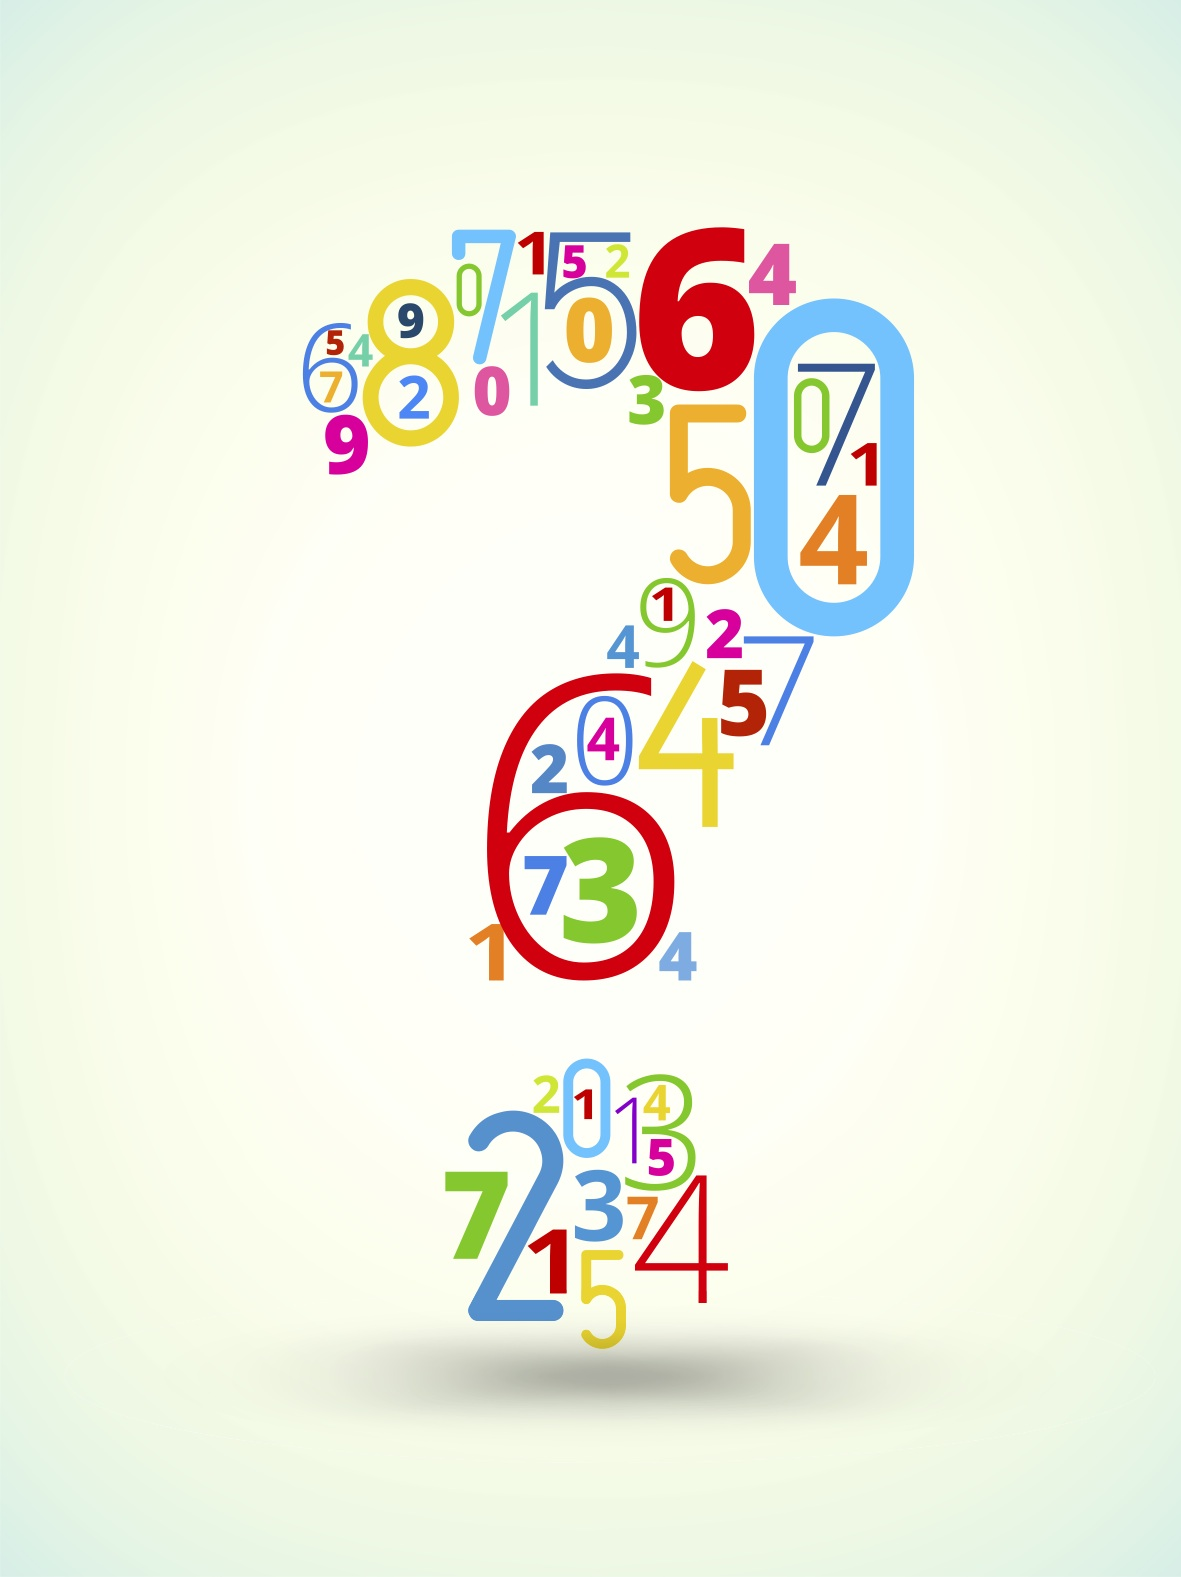 6 Questions to Consider When Selecting an Online Math Tutor